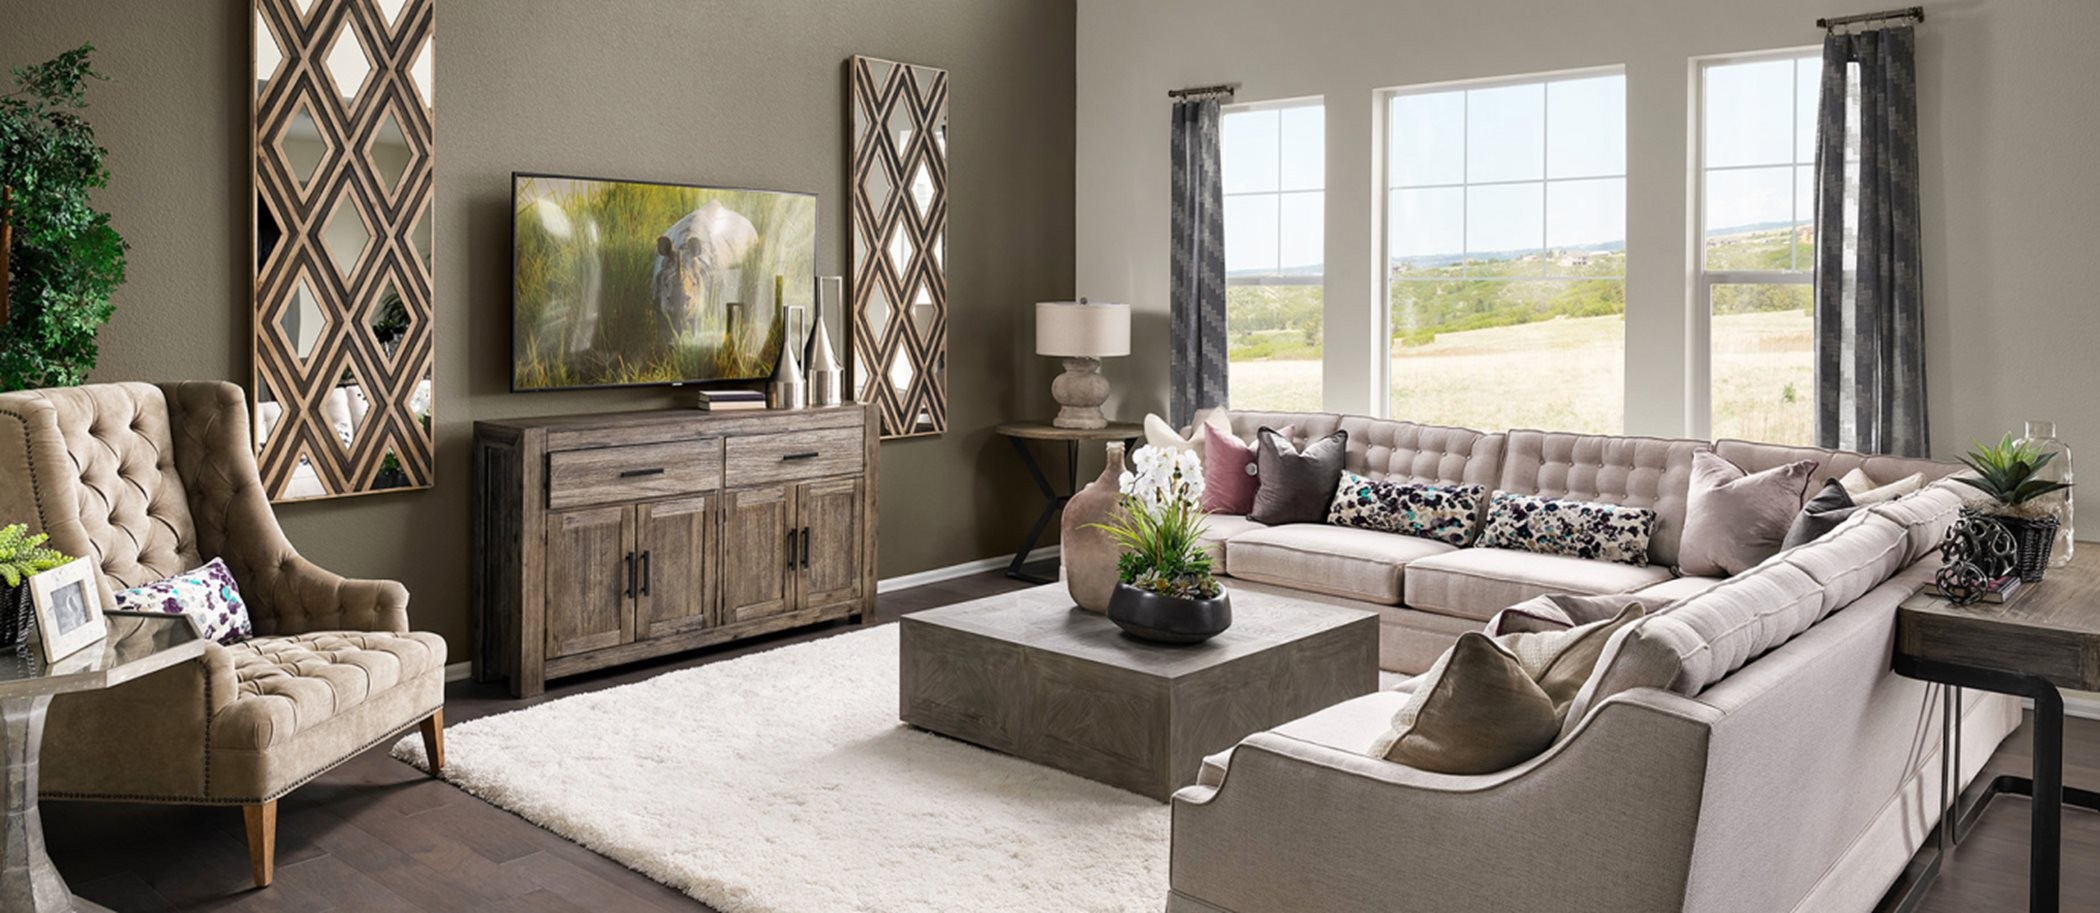 Gold Creek Valley The Monarch Collection Stonehaven Living Room